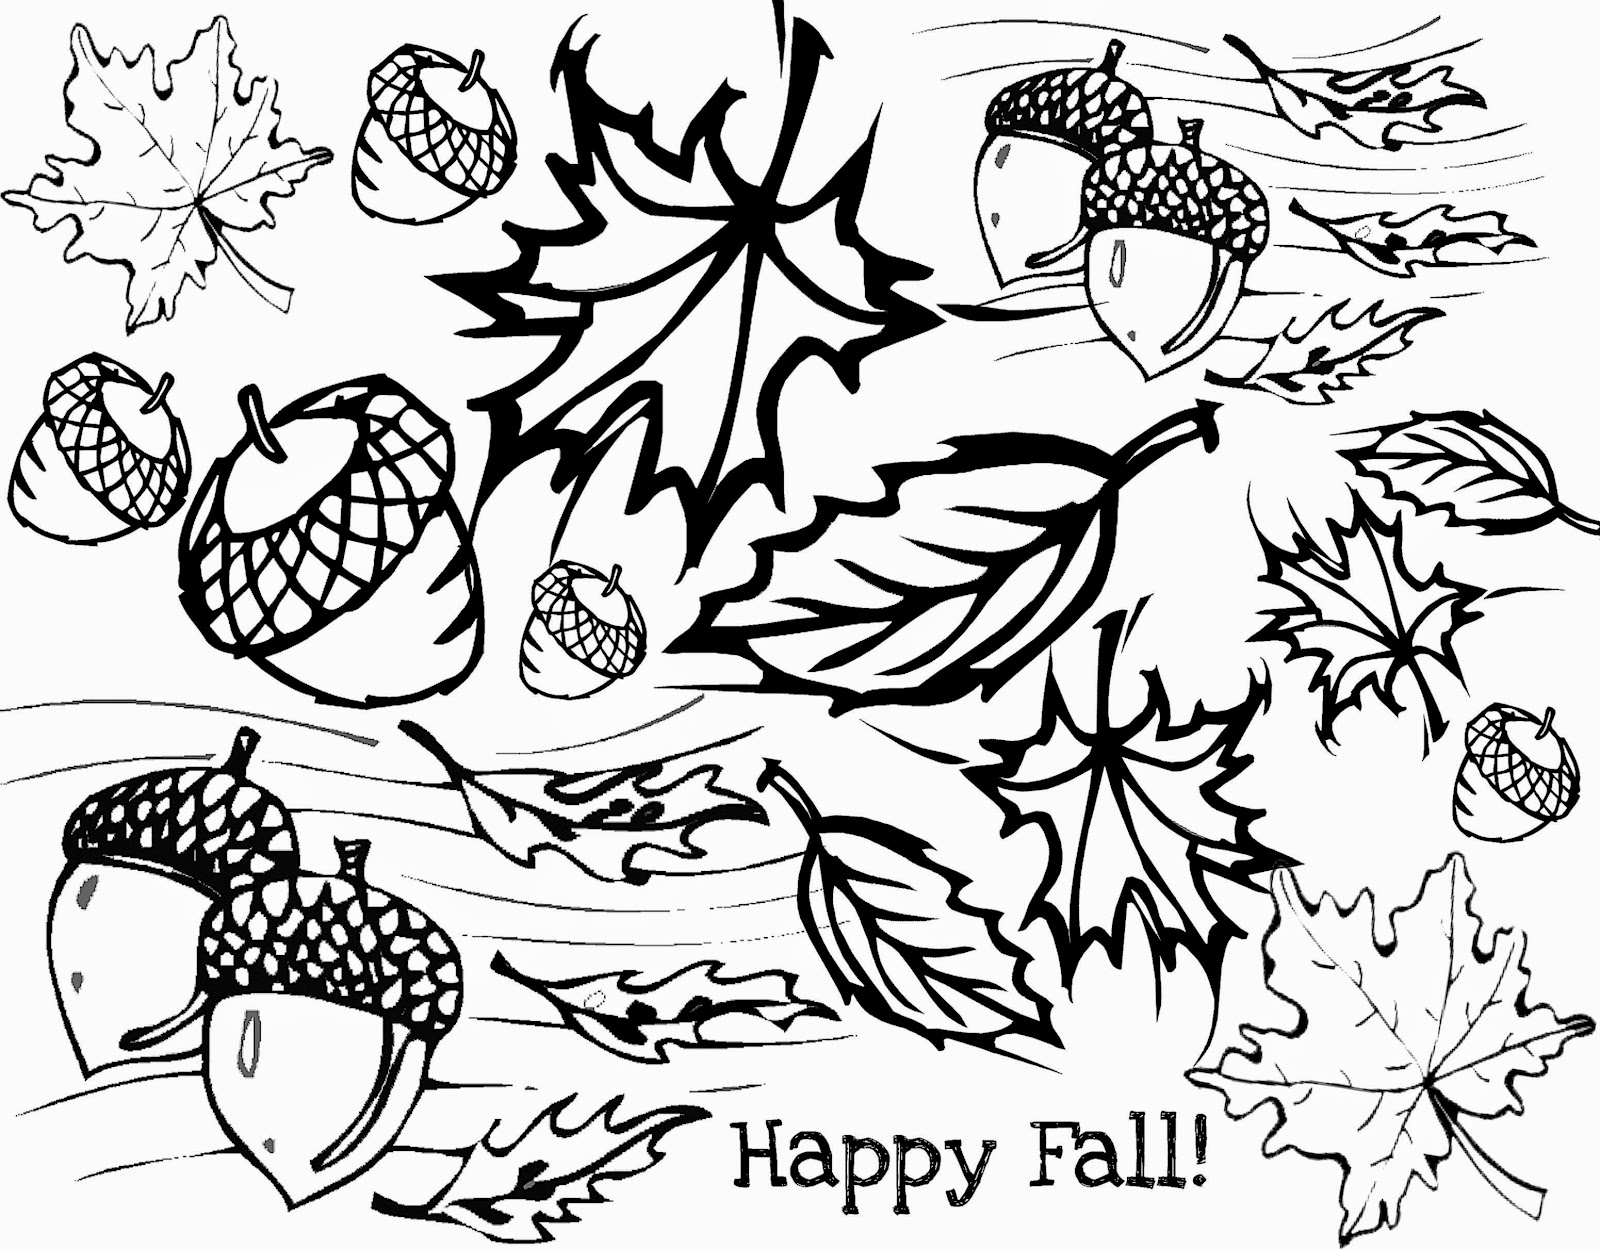 Free coloring pages leaves - Printablefallcoloringpage Printablefallcoloringpage Printablefallcoloringpage